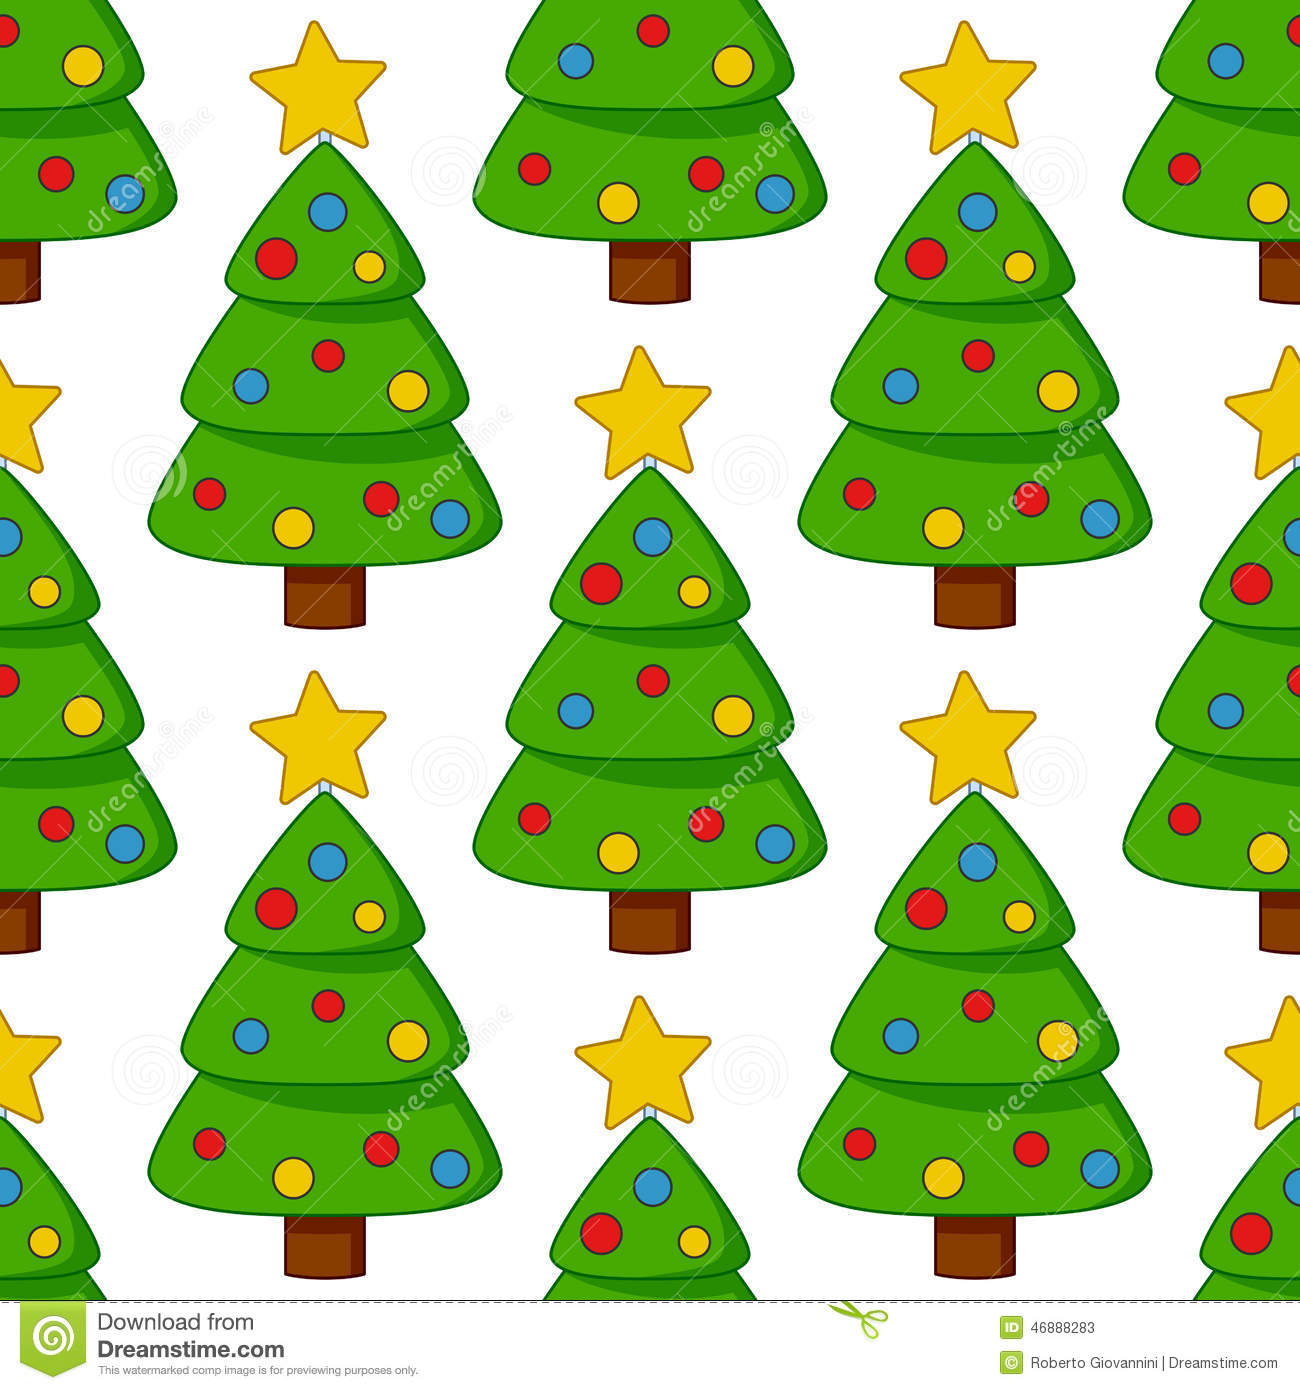 Cartoon Christmas Tree Seamless Pattern Stock Vector